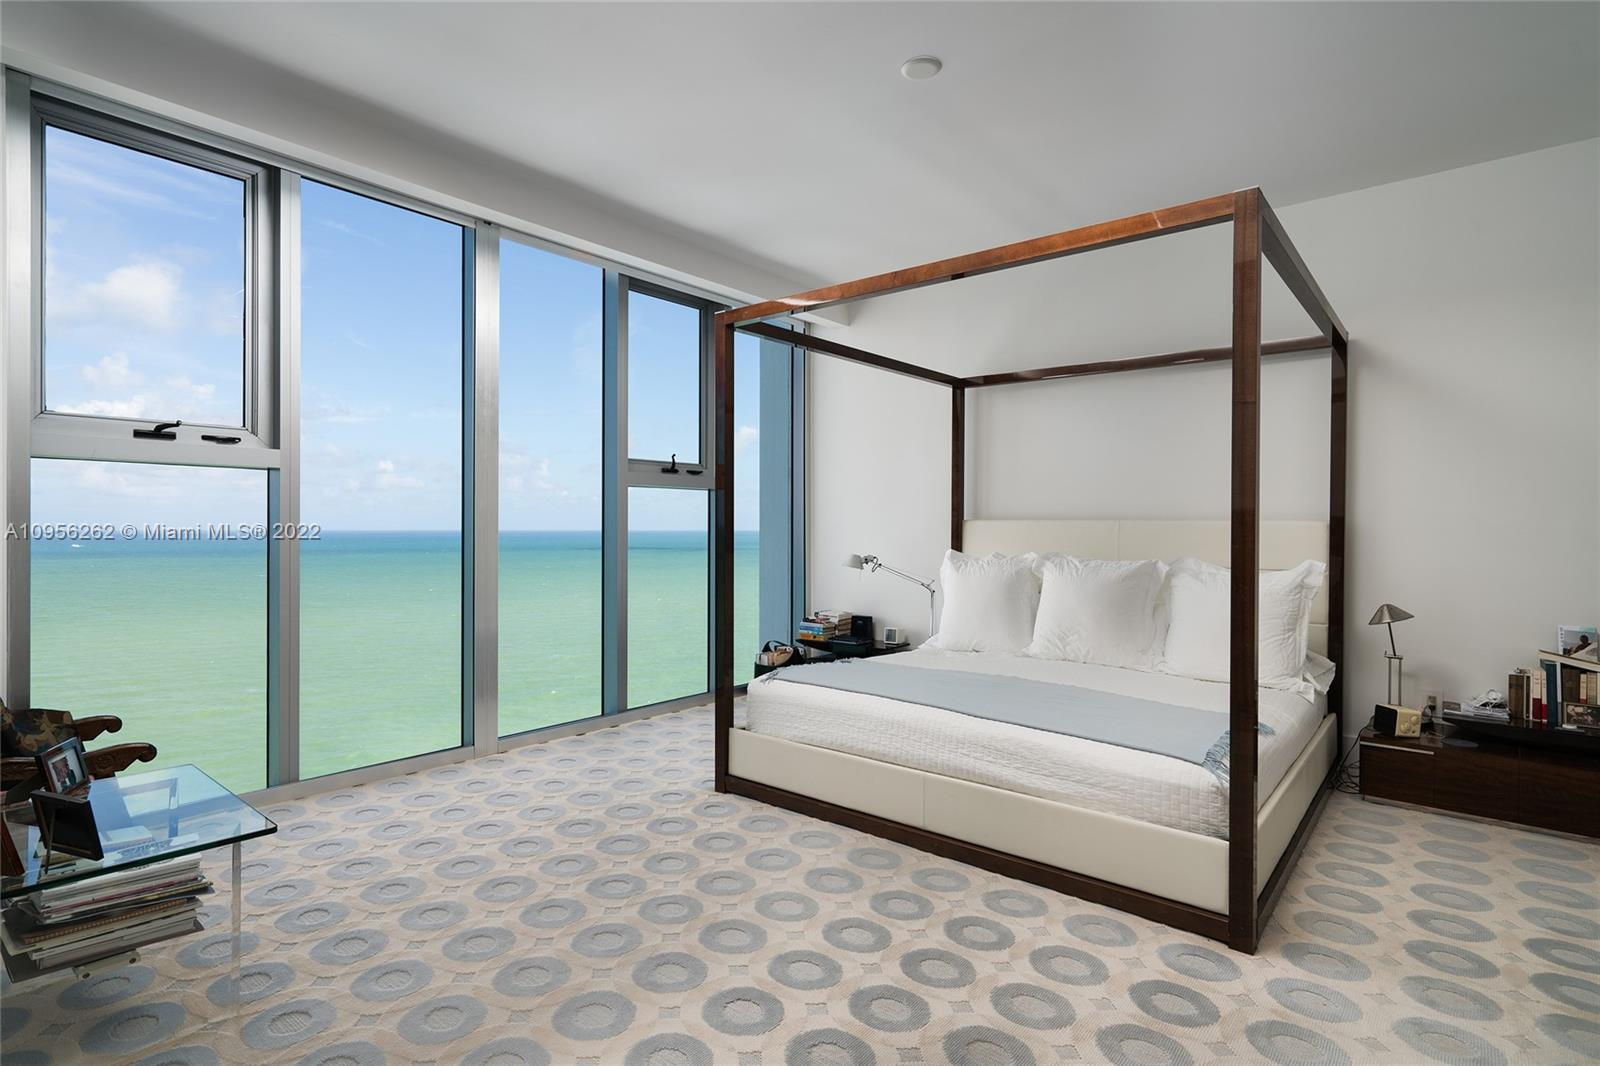 Opportunity to live in the only unit in the Carillion Miami with a unique 3,000 sf rooftop terrace with a pool overlooking the ocean and city, spanning east to west. Bask in breathtaking sunrise & sunsets views. 2 units were meticulously combined to create this 3 bedroom, 3 full & 1 half bathroom residence in the sky boasting 2,940 SF. This incredible residence boasts stunning direct ocean views, 2 principal bedrooms with expansive walk-in closets, an office, floor-to-ceiling windows, gourmet kitchen, top-of-the-line Miele appliances, Liebherr wine storage & electronic blackout shades in all rooms. Enjoy 5 star service, a 70,000 SF Spa/Fitness Center with a health & wellness center, walking & biking paths along the beach, an onsite restaurant, 4 pools, 24hr concierge & direct beach access.